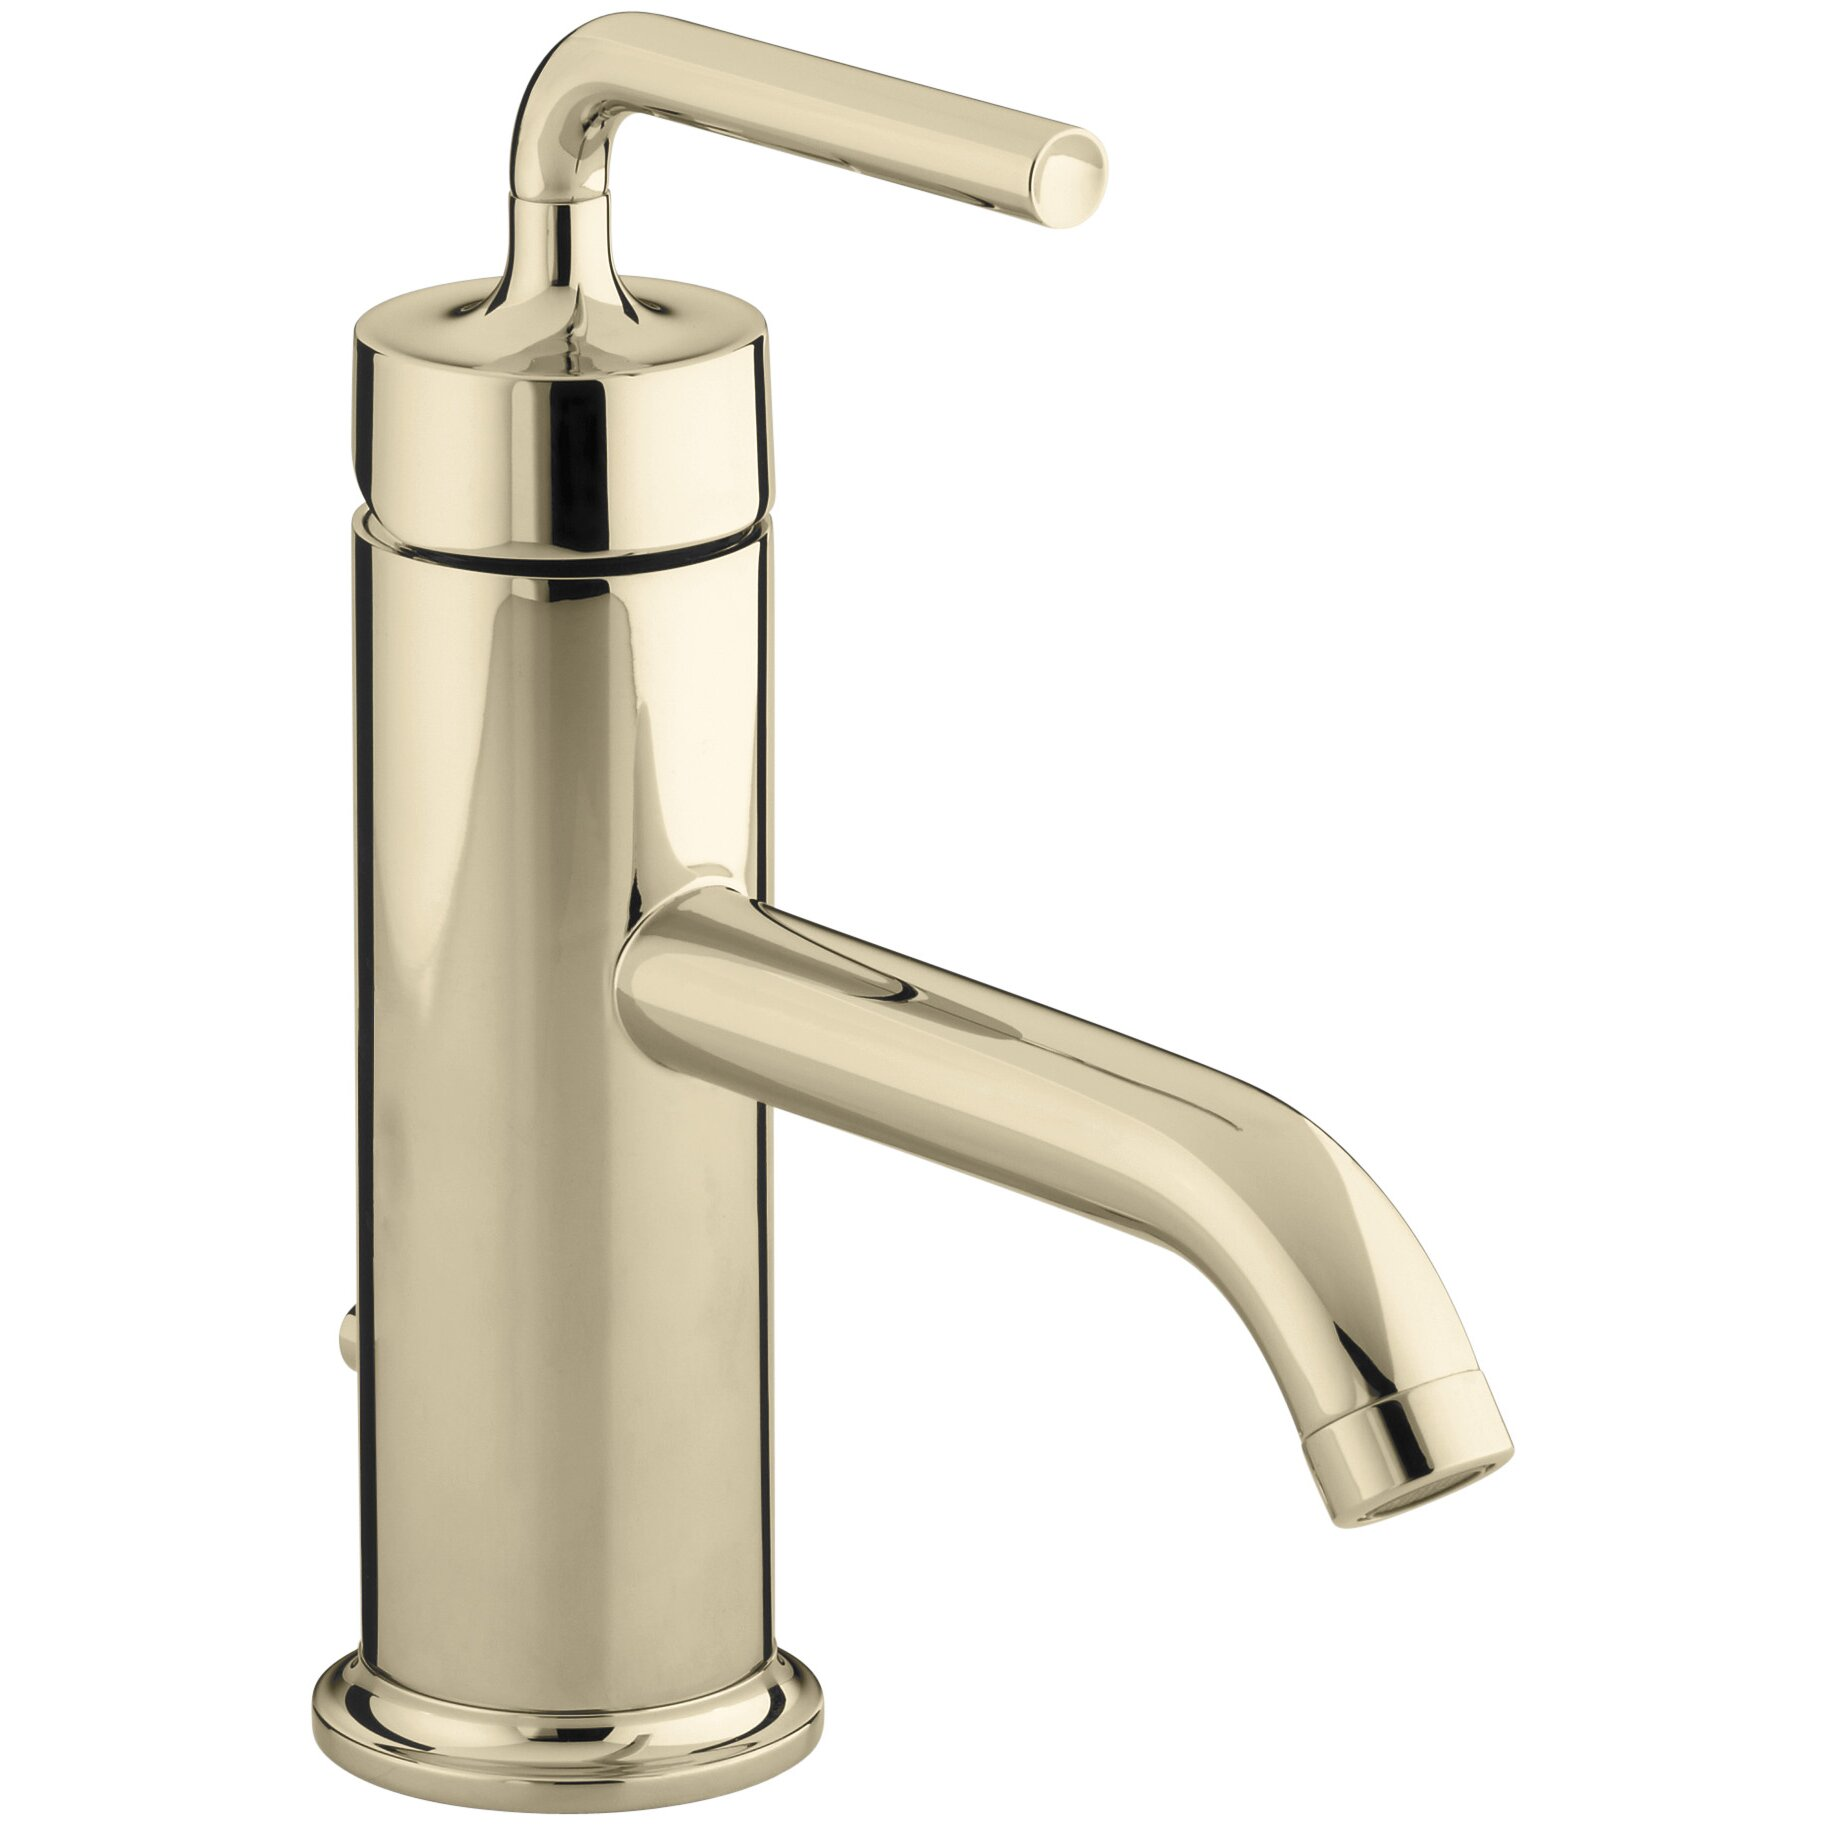 Kohler Purist Sink : Kohler Purist Single-Hole Bathroom Sink Faucet with Straight Lever ...